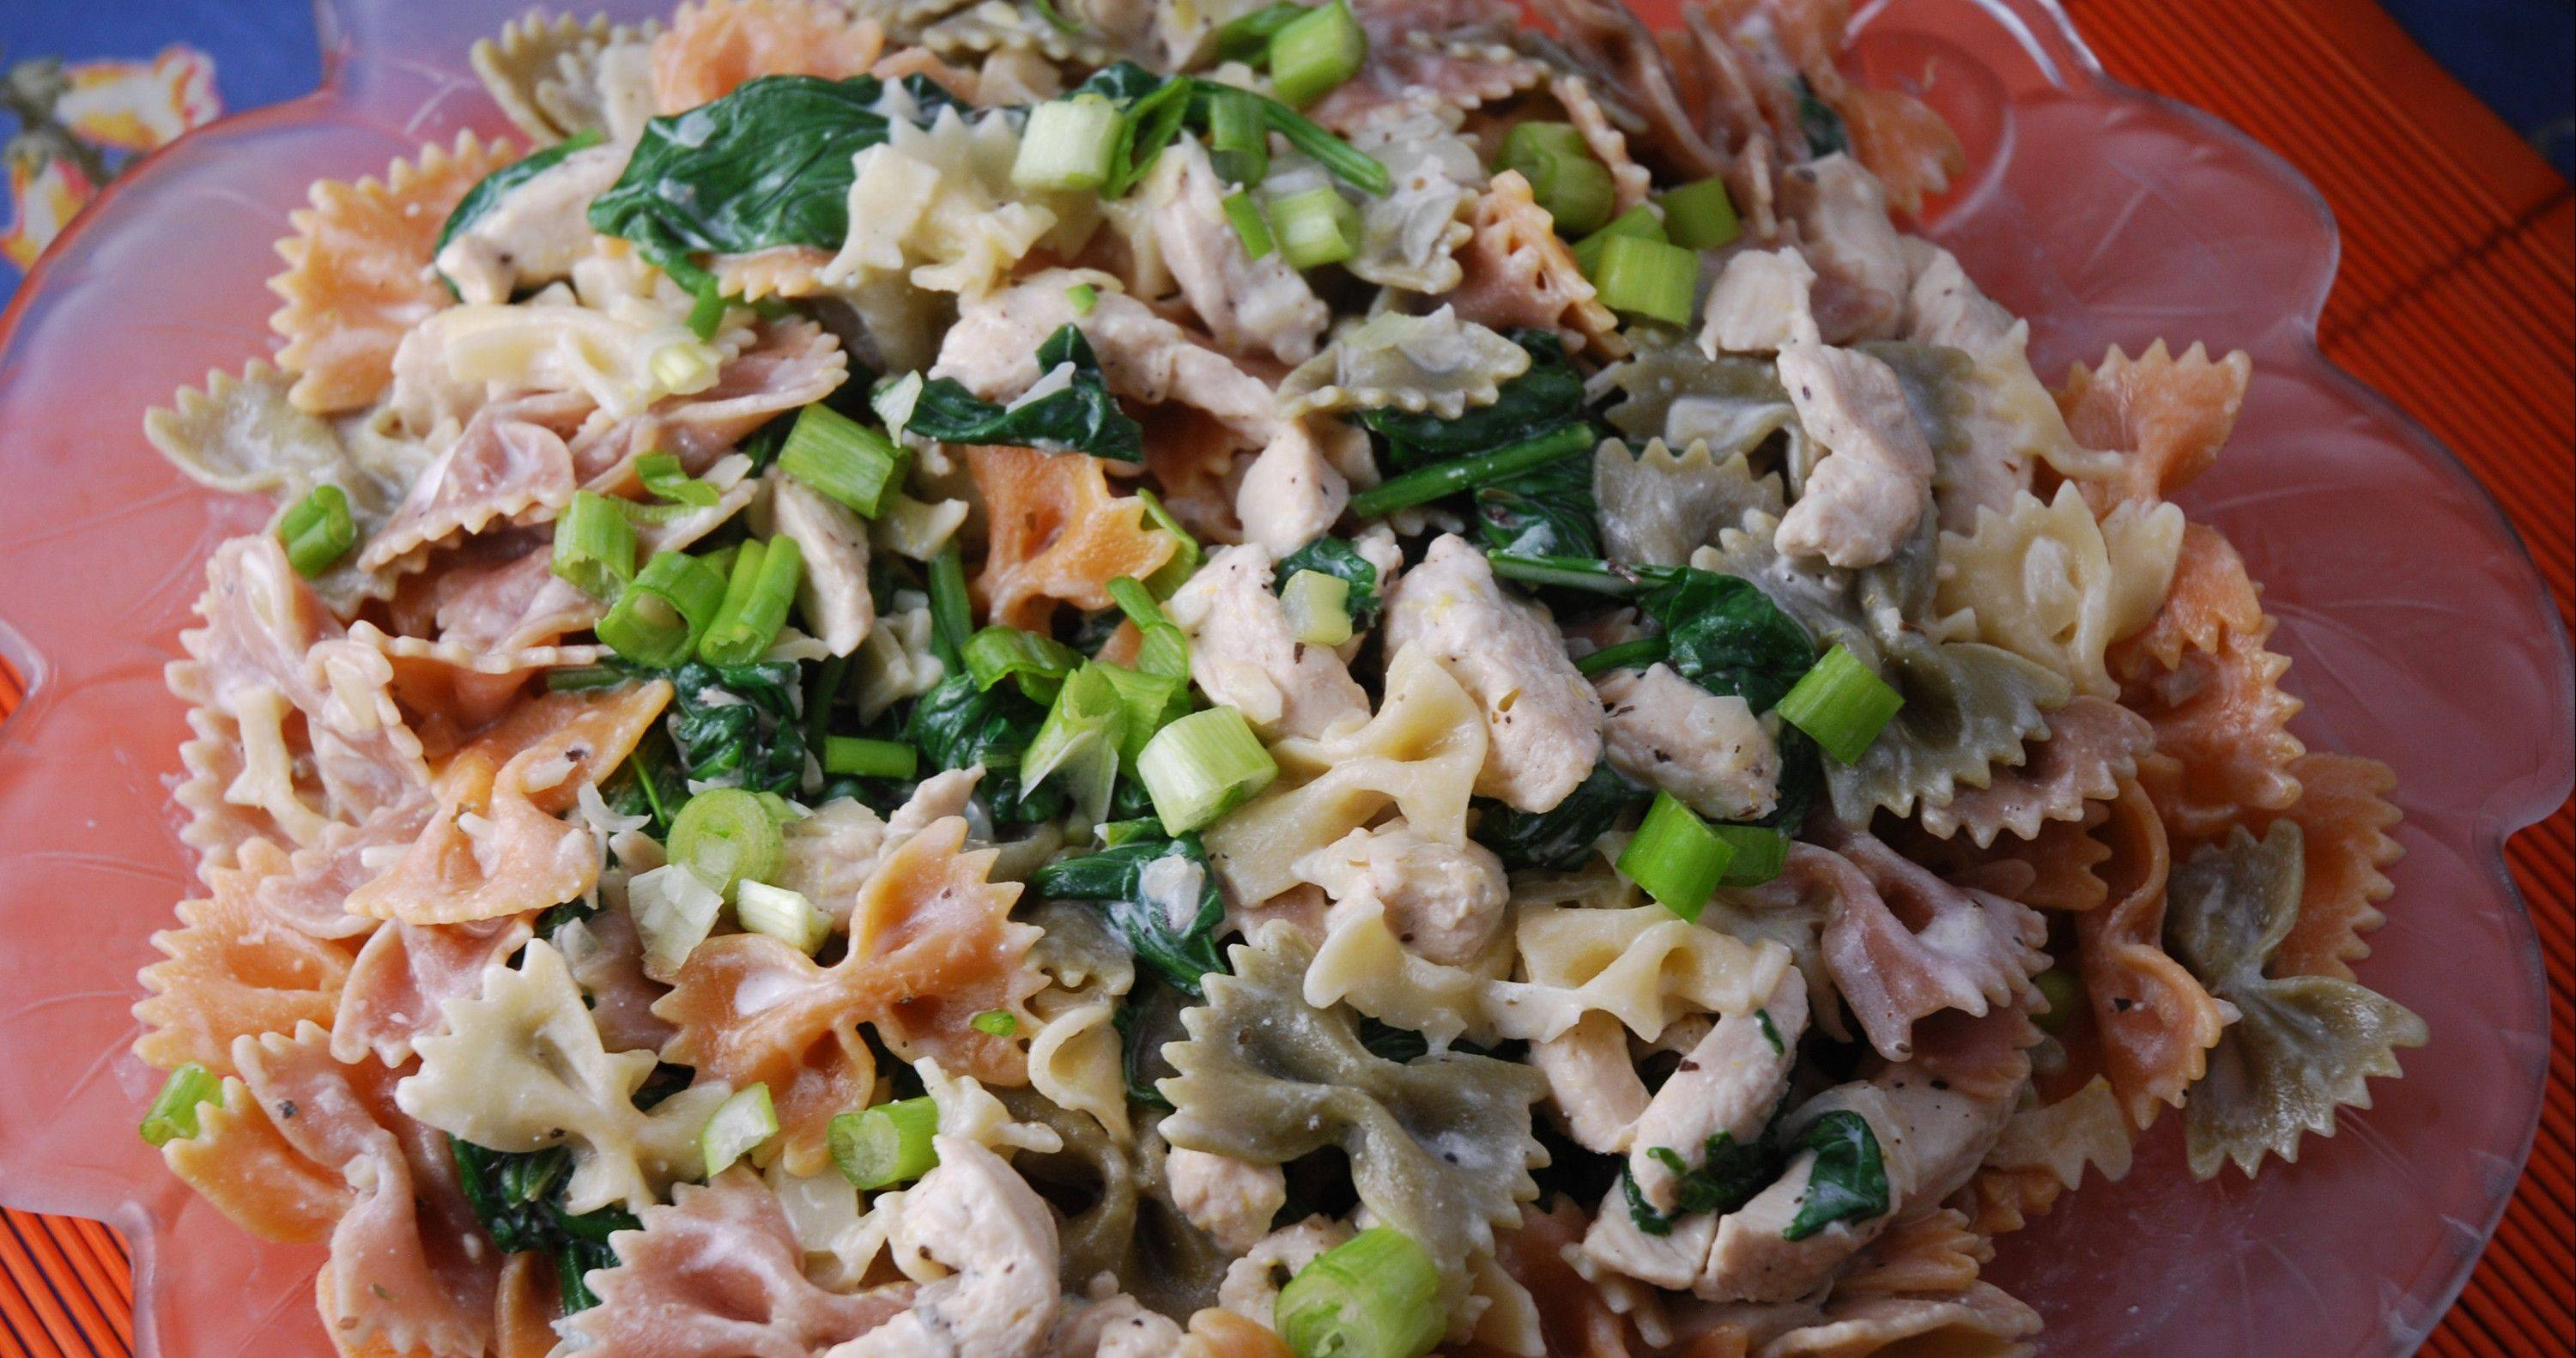 Spinach, Chicken and Chevre Pasta